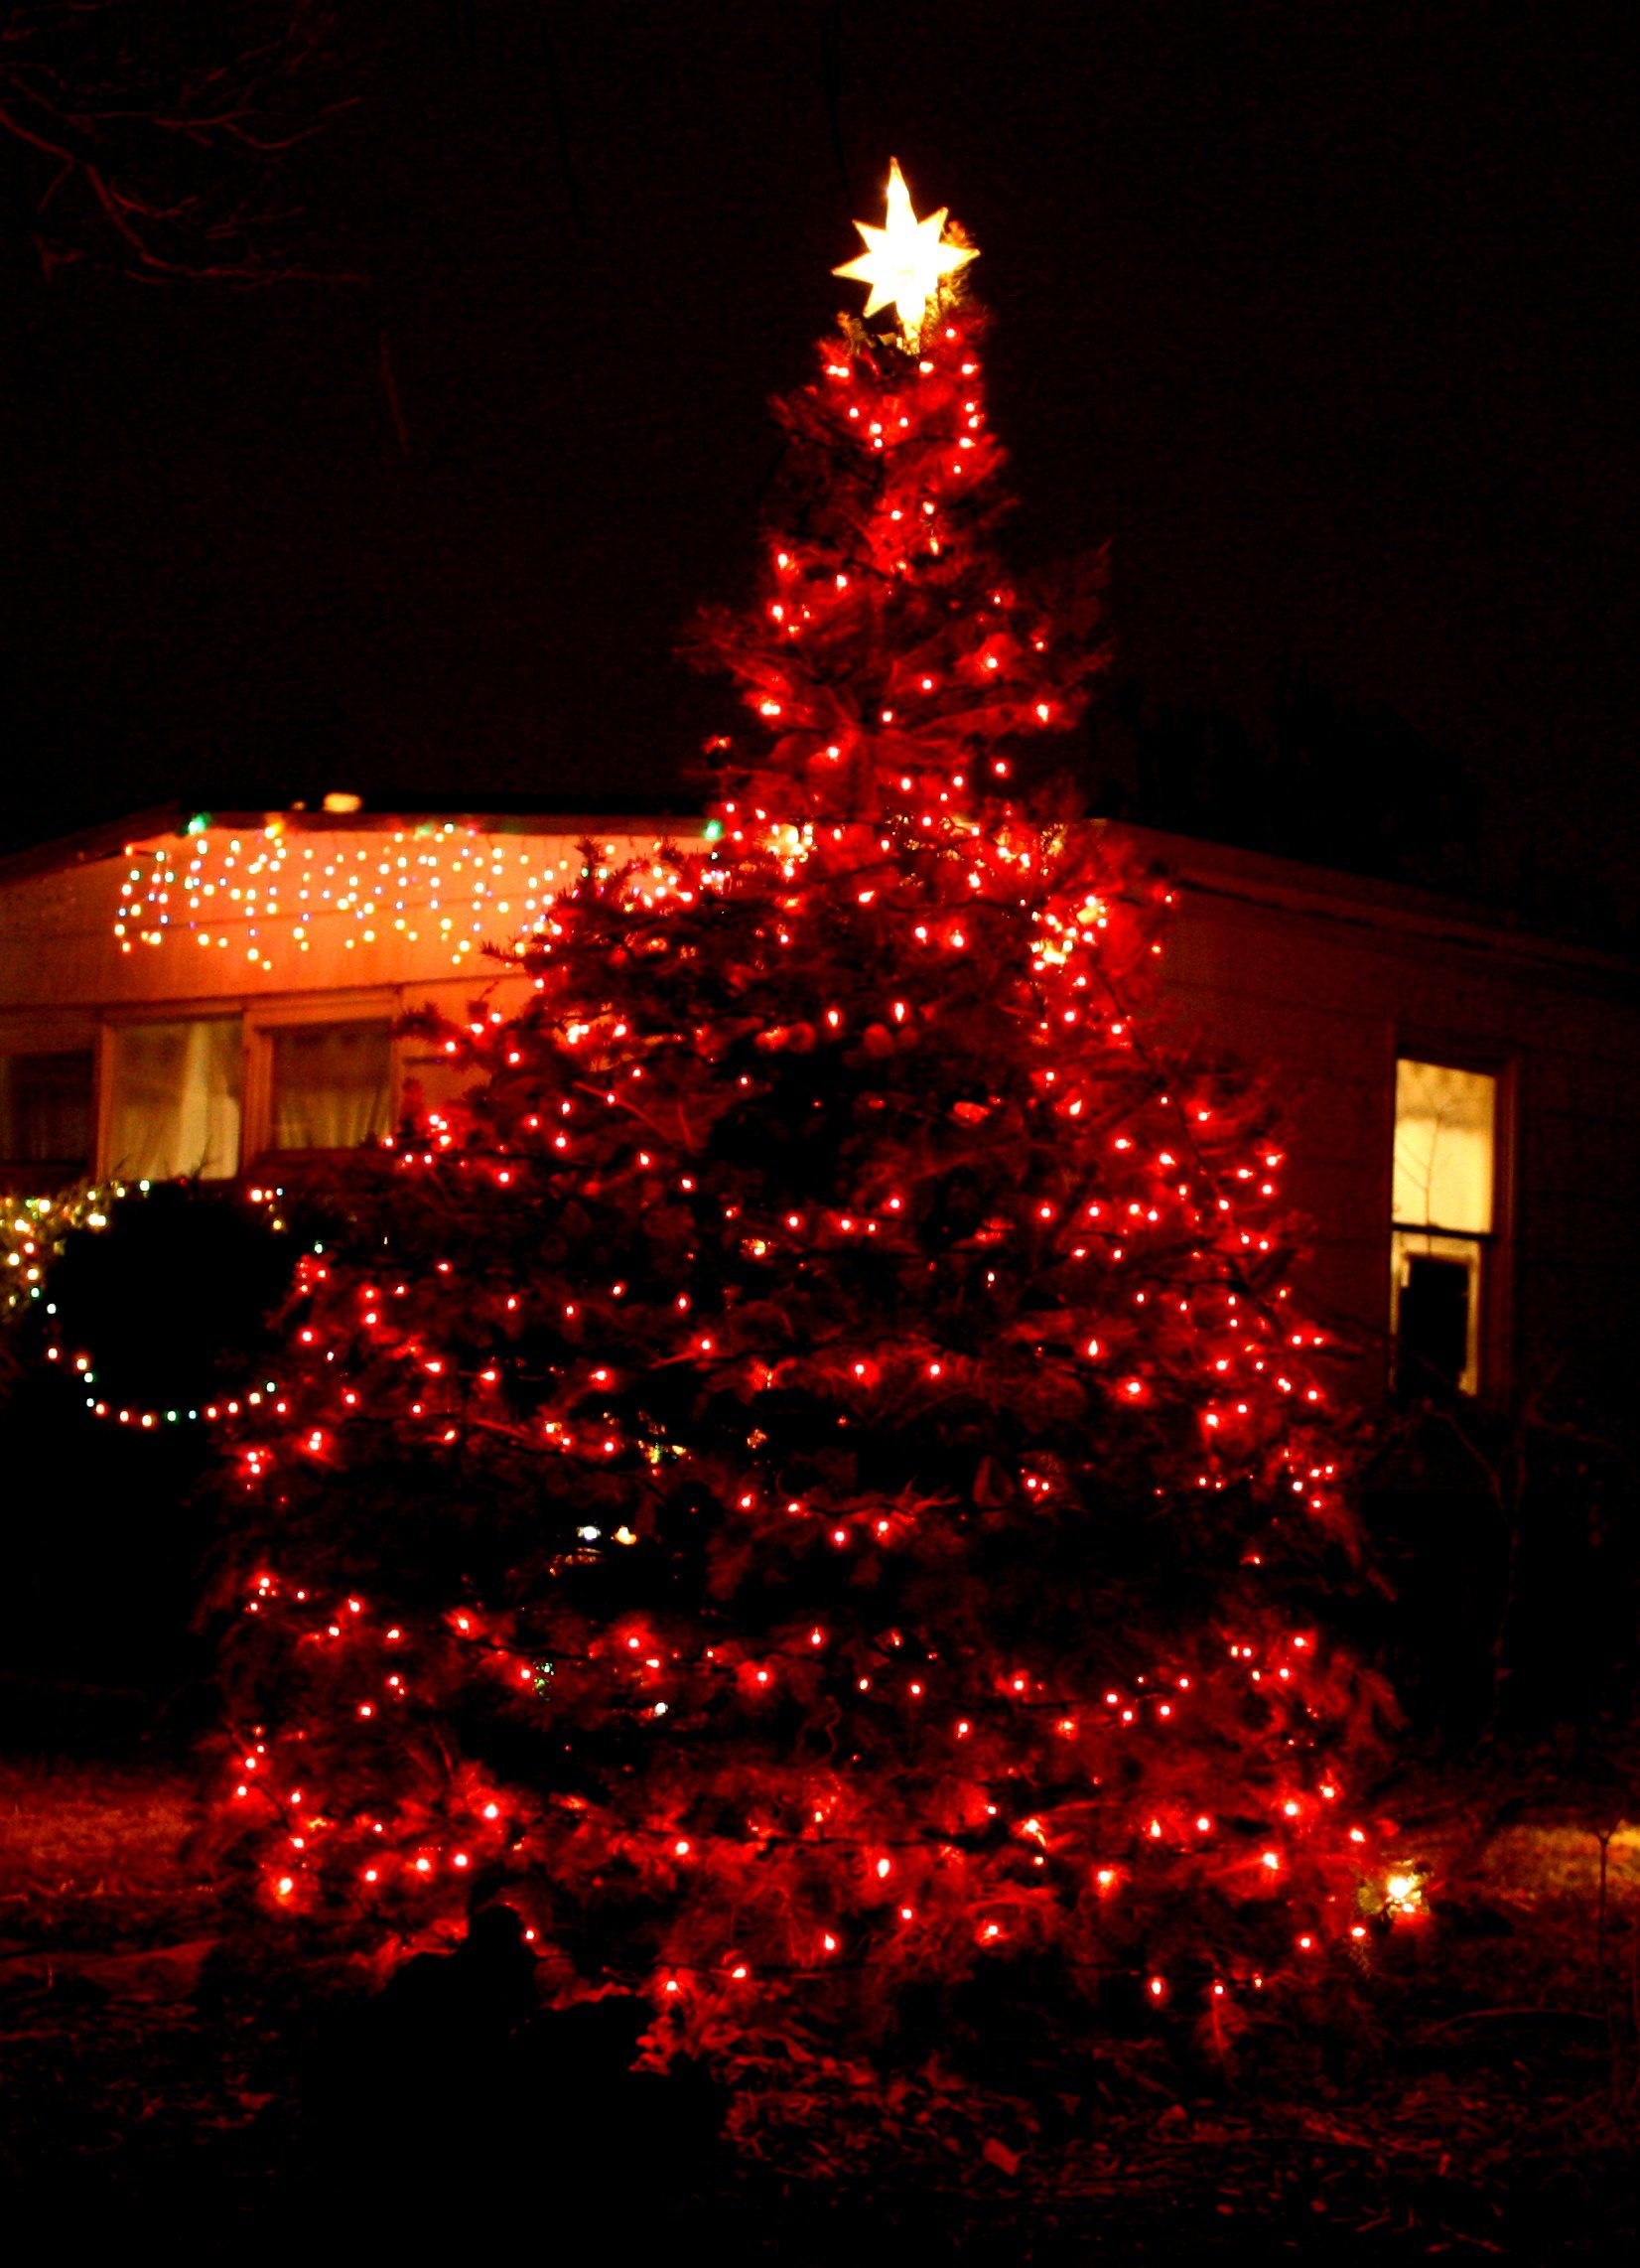 Christmas Lights Photo Features An Outdoor Christmas Tree Decoratied With Red Lights Outdoor Christmas Tree Christmas Lights Red Christmas Lights